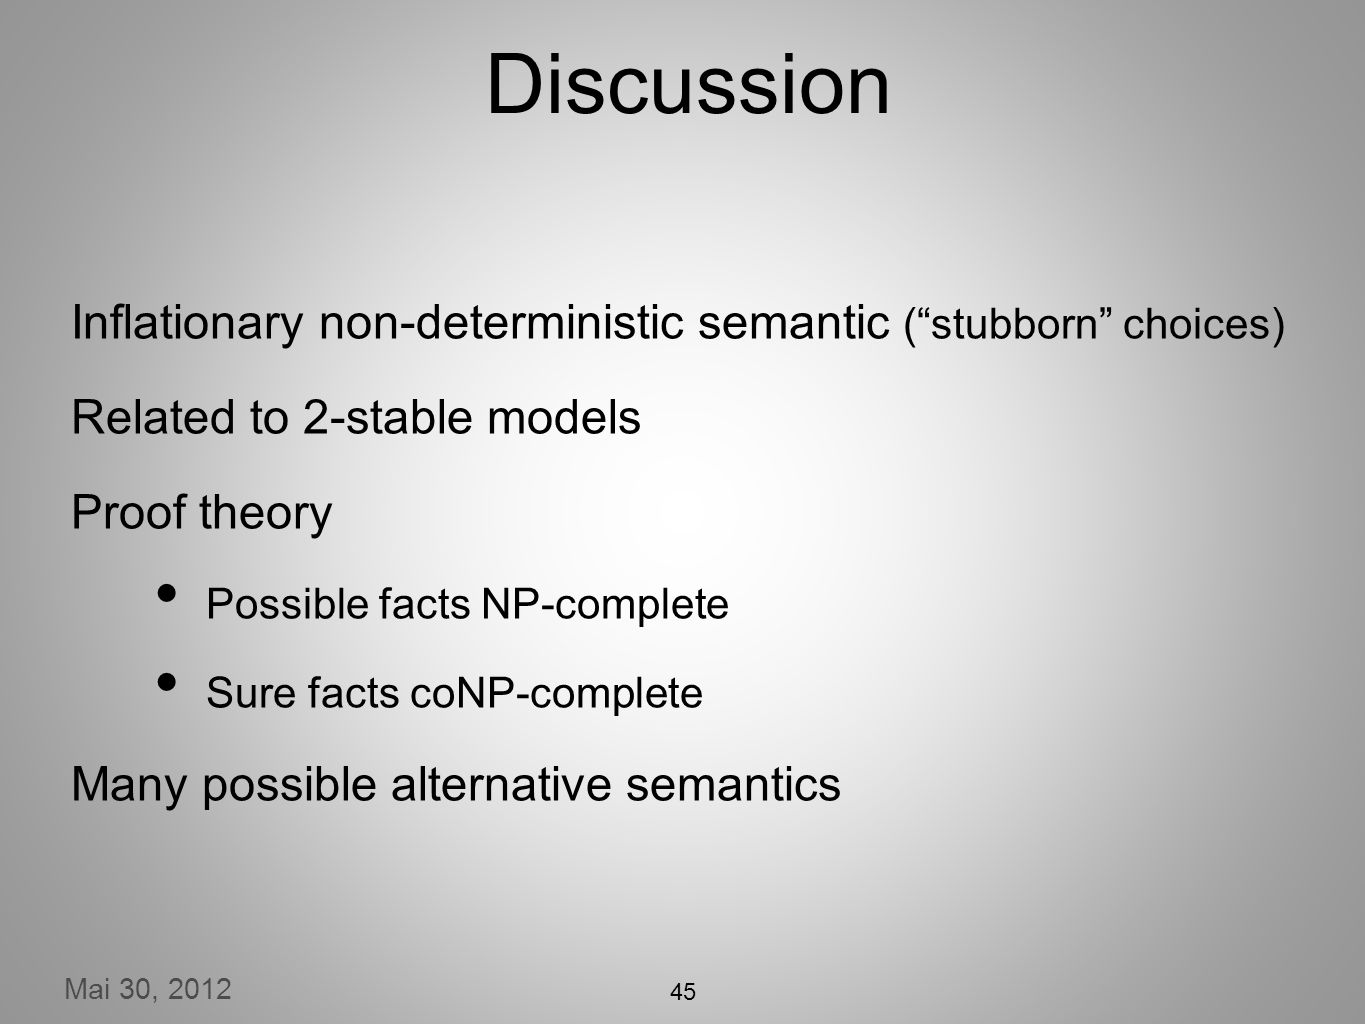 Mai 30, 2012 Discussion Inflationary non-deterministic semantic (stubborn choices) Related to 2-stable models Proof theory Possible facts NP-complete Sure facts coNP-complete Many possible alternative semantics 45